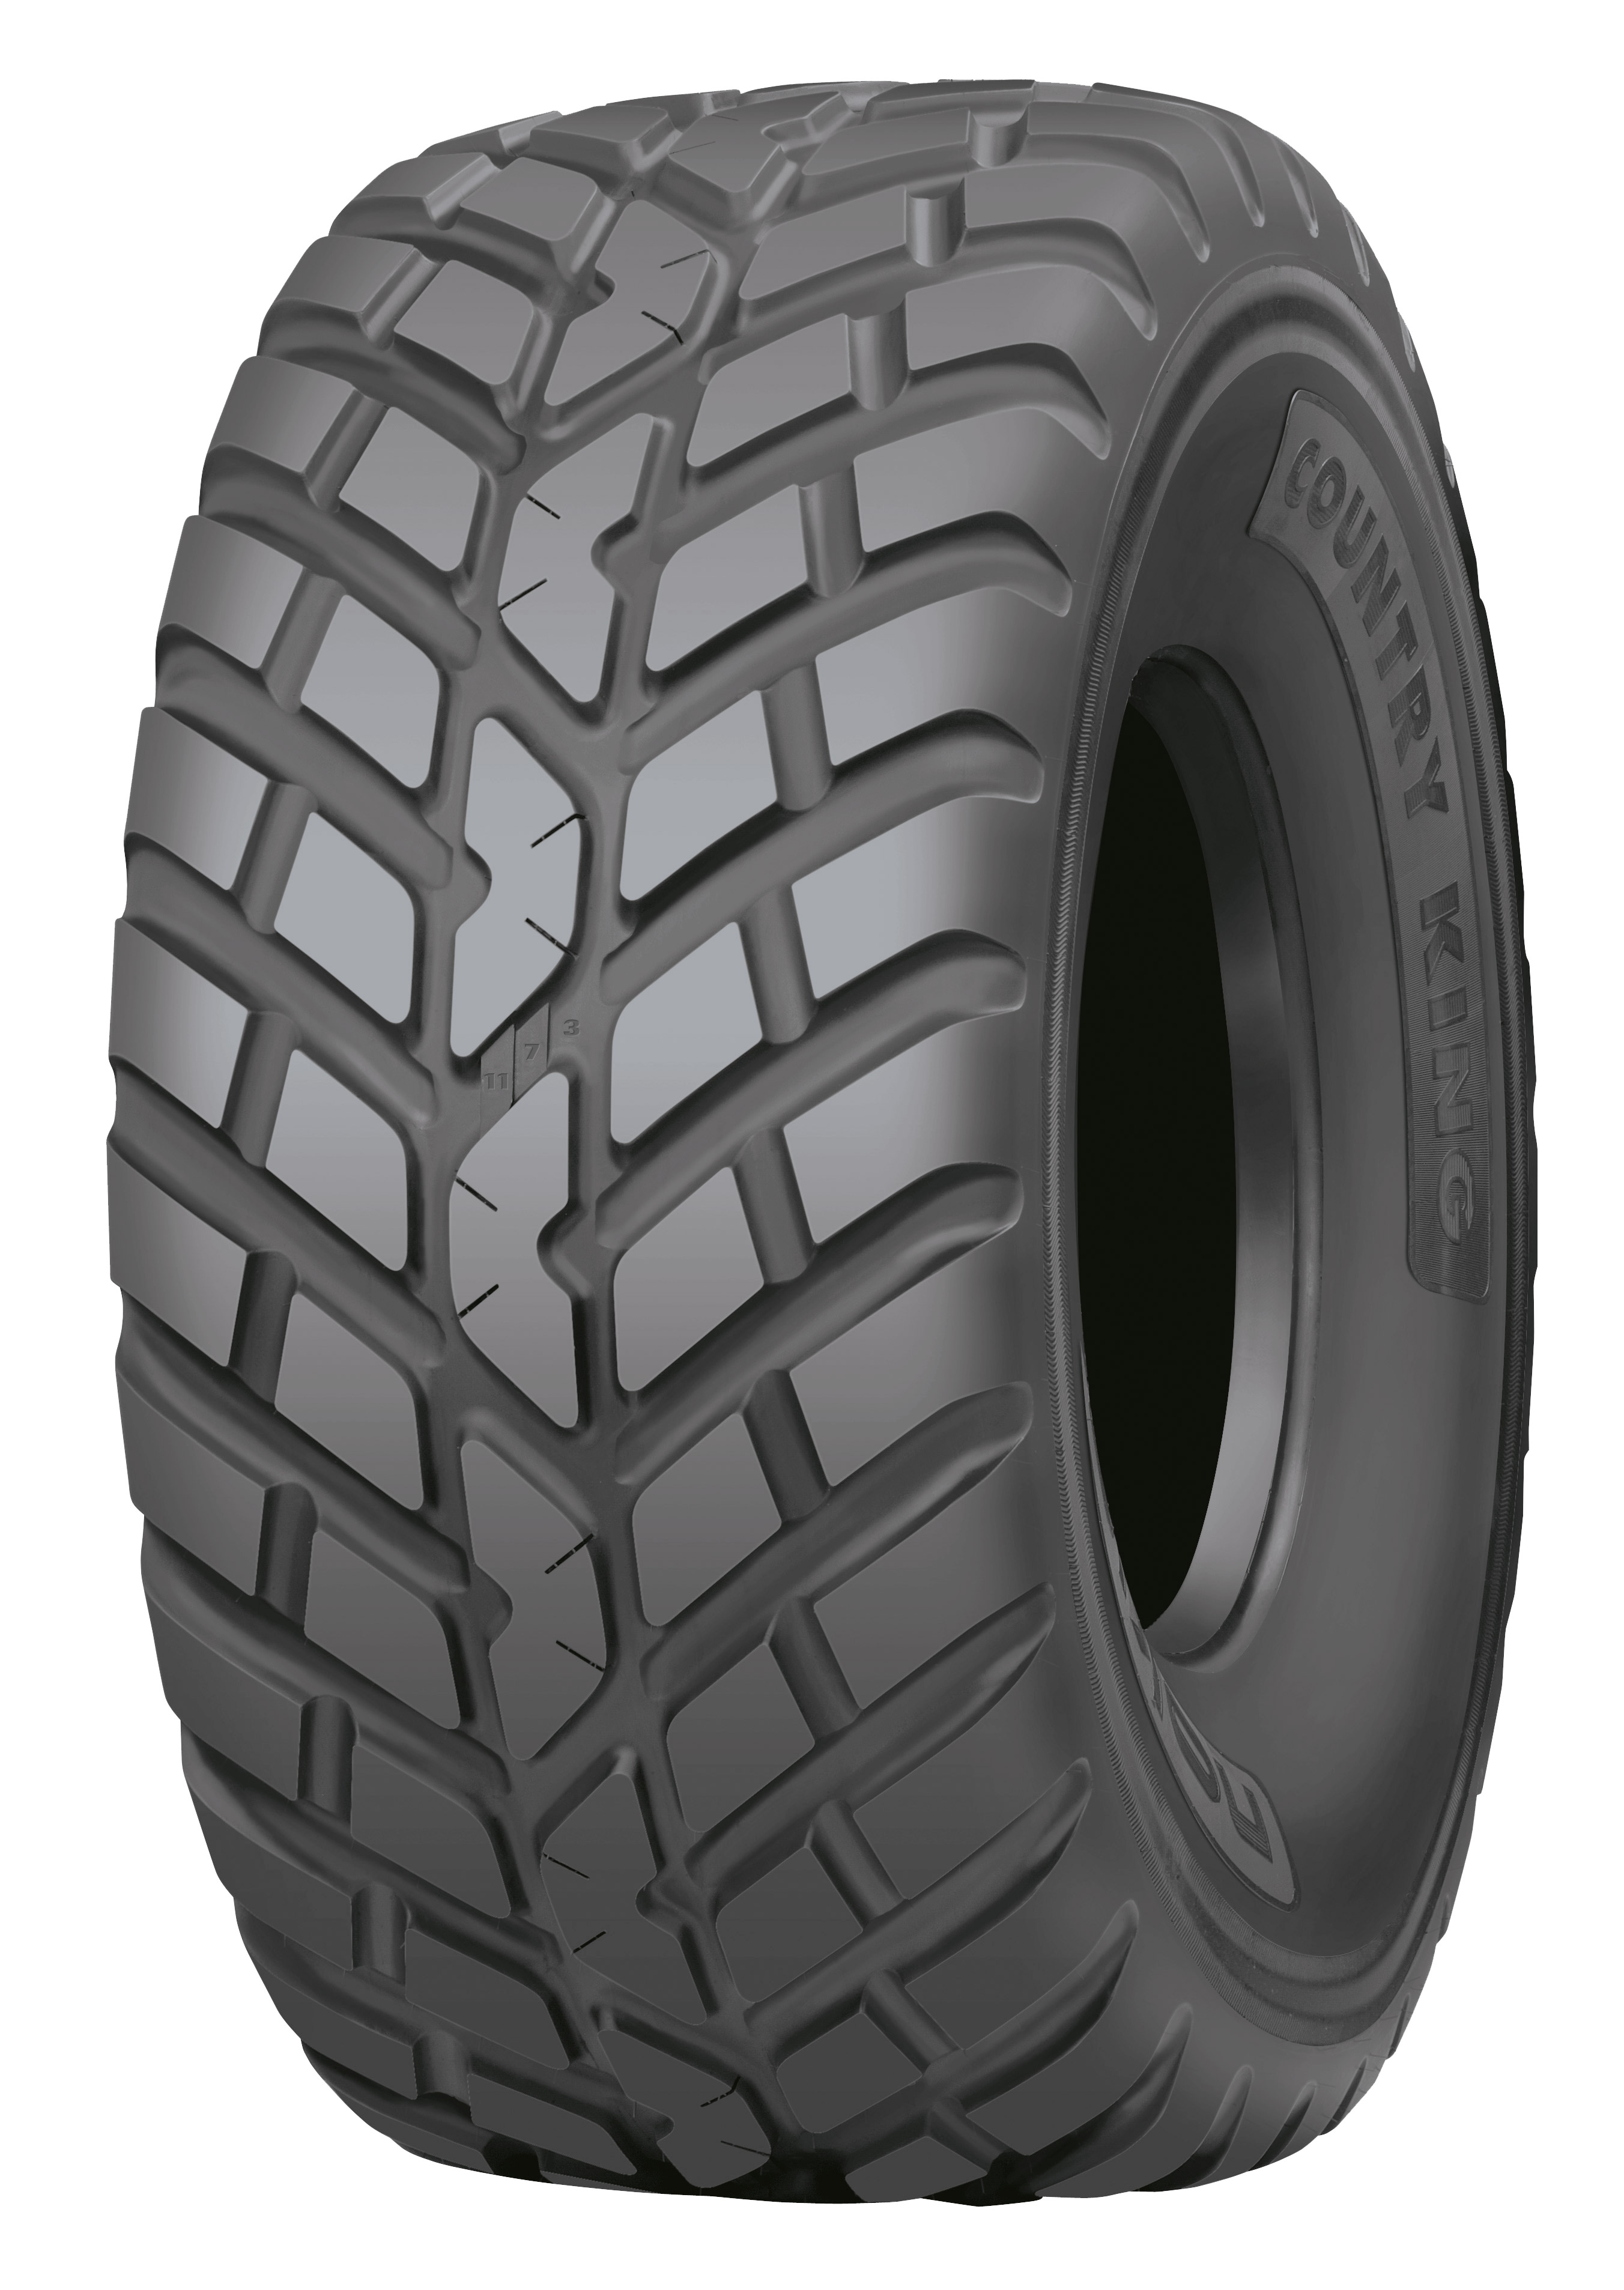 600/50R22.5 NOKIAN COUNTRY KING 159D